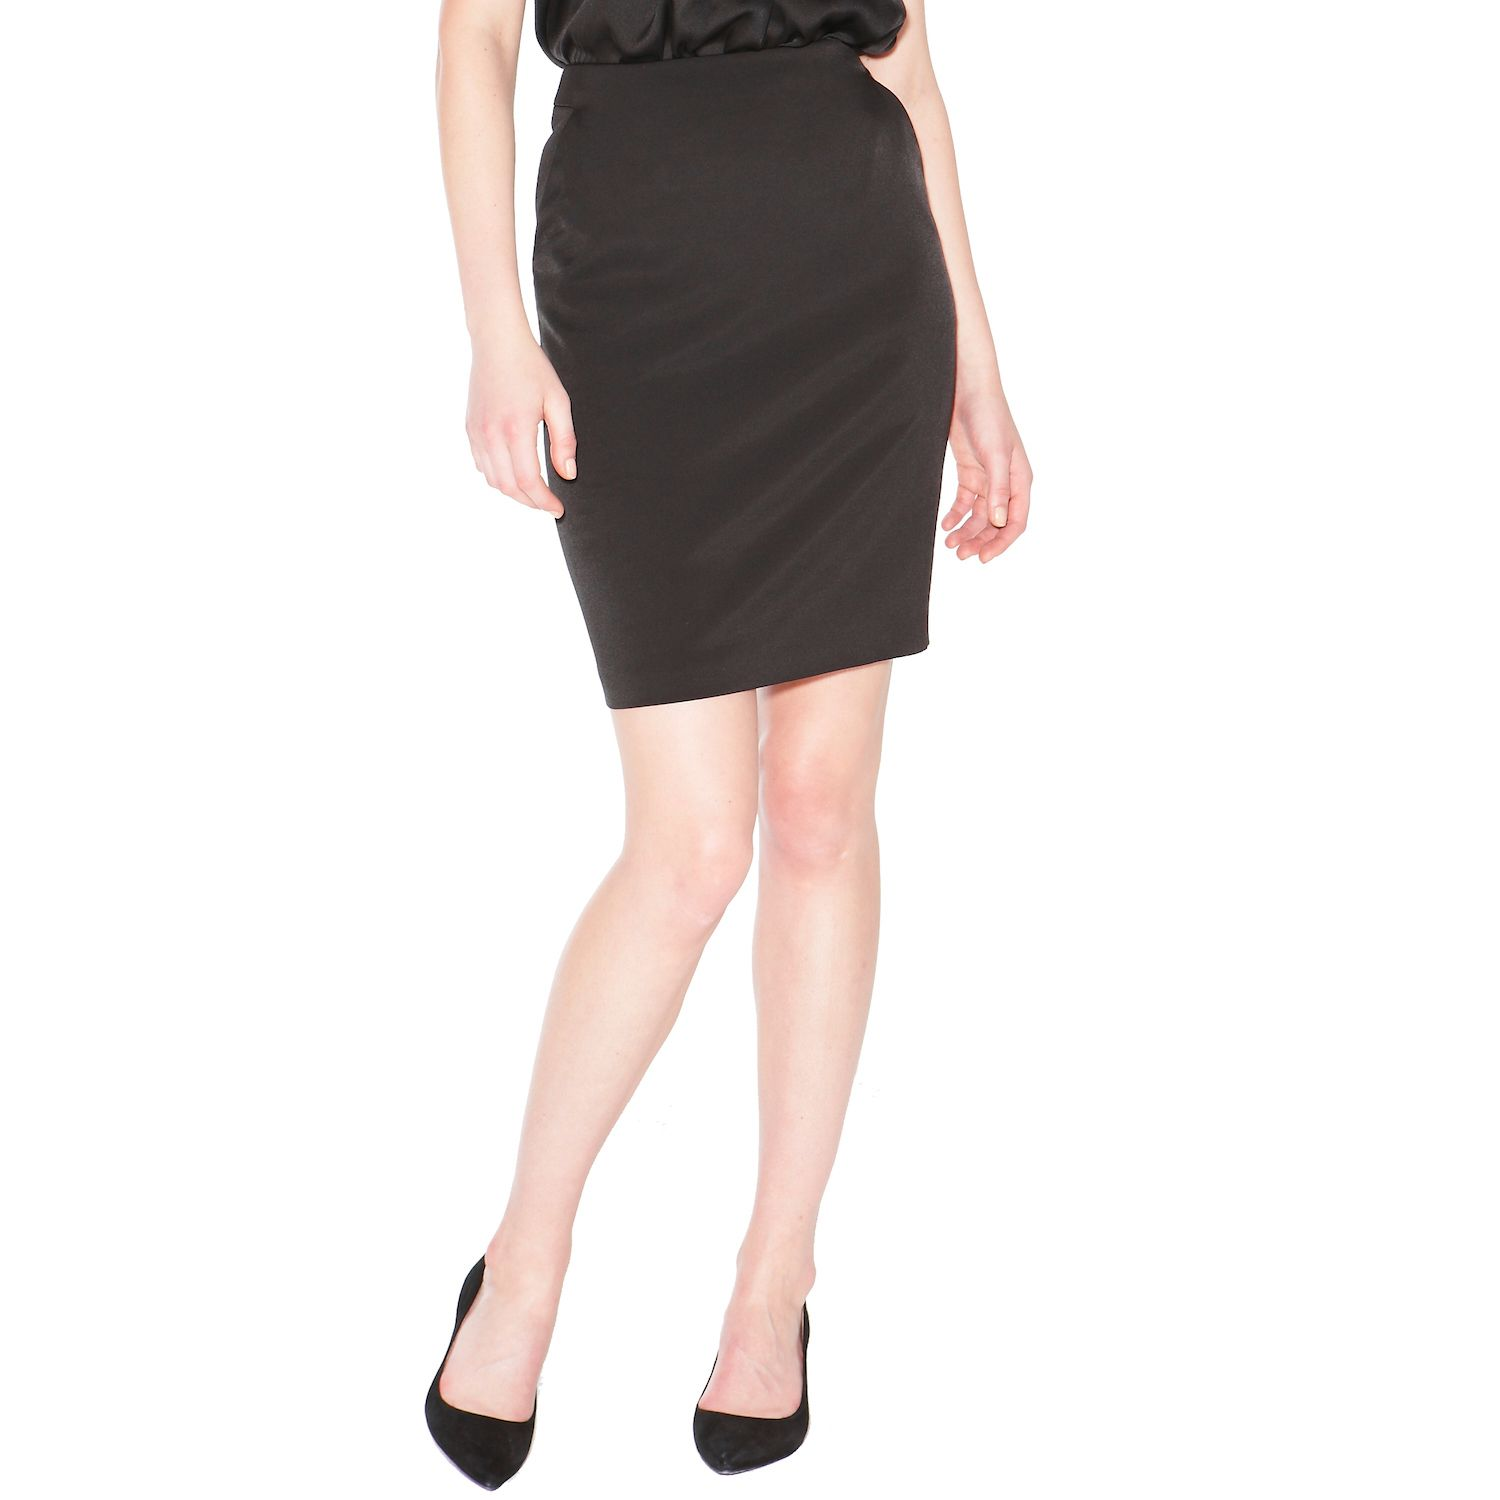 Pencil skirt with side pockets